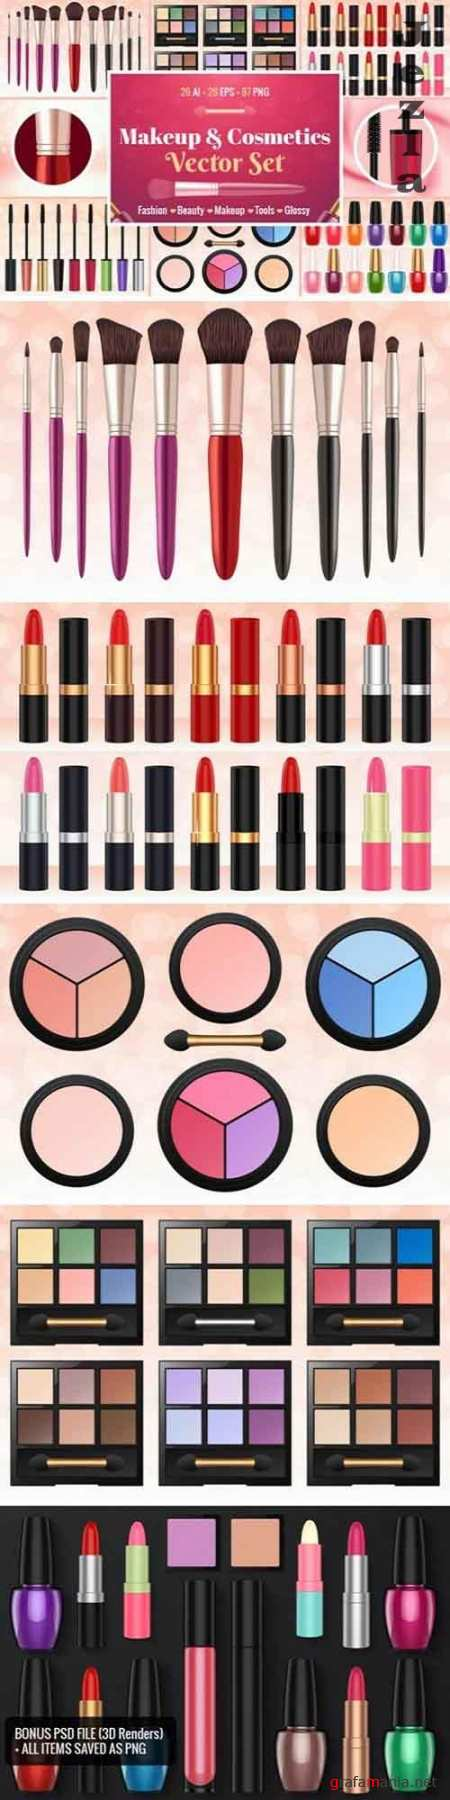 Makeup & Cosmetics Vector Set - 1783247